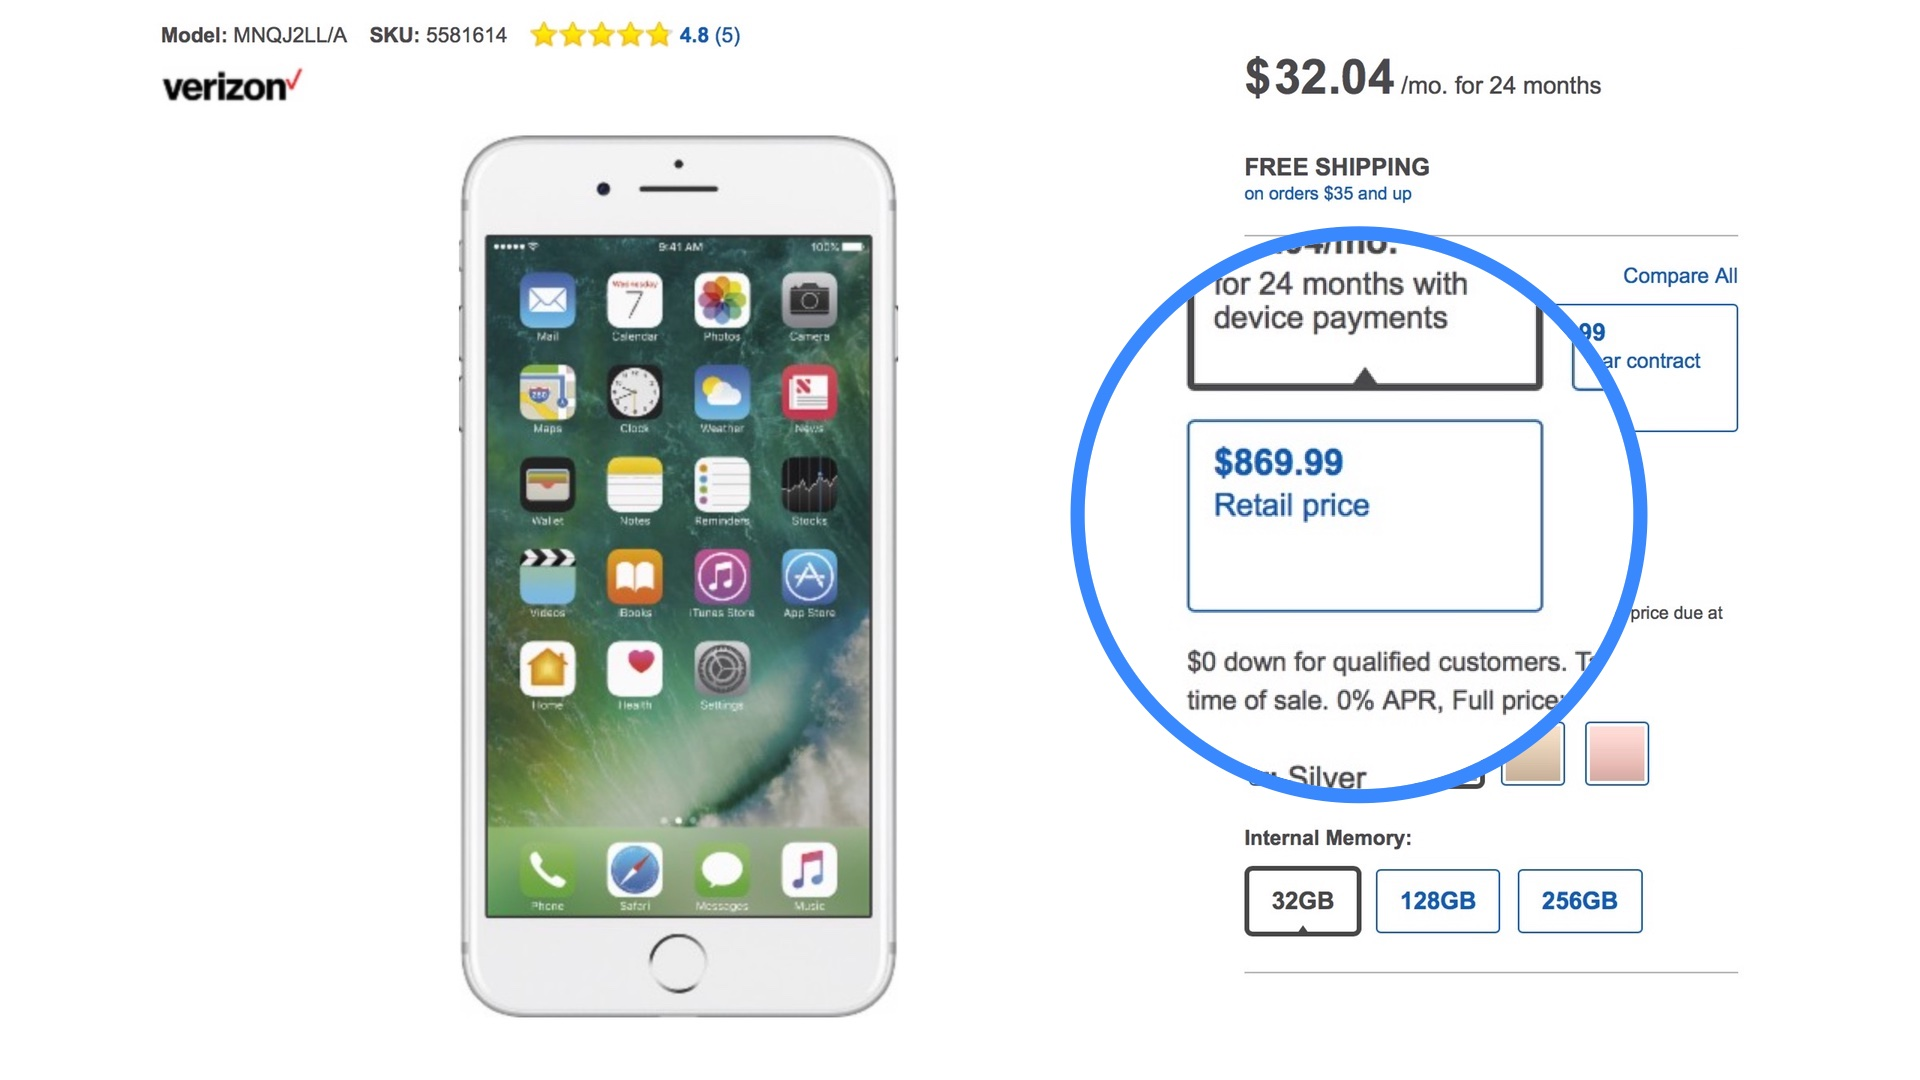 Psa Careful Out There Best Buy Is Charging 50 To 100 Over Full Msrp For The Iphone 7 9to5mac